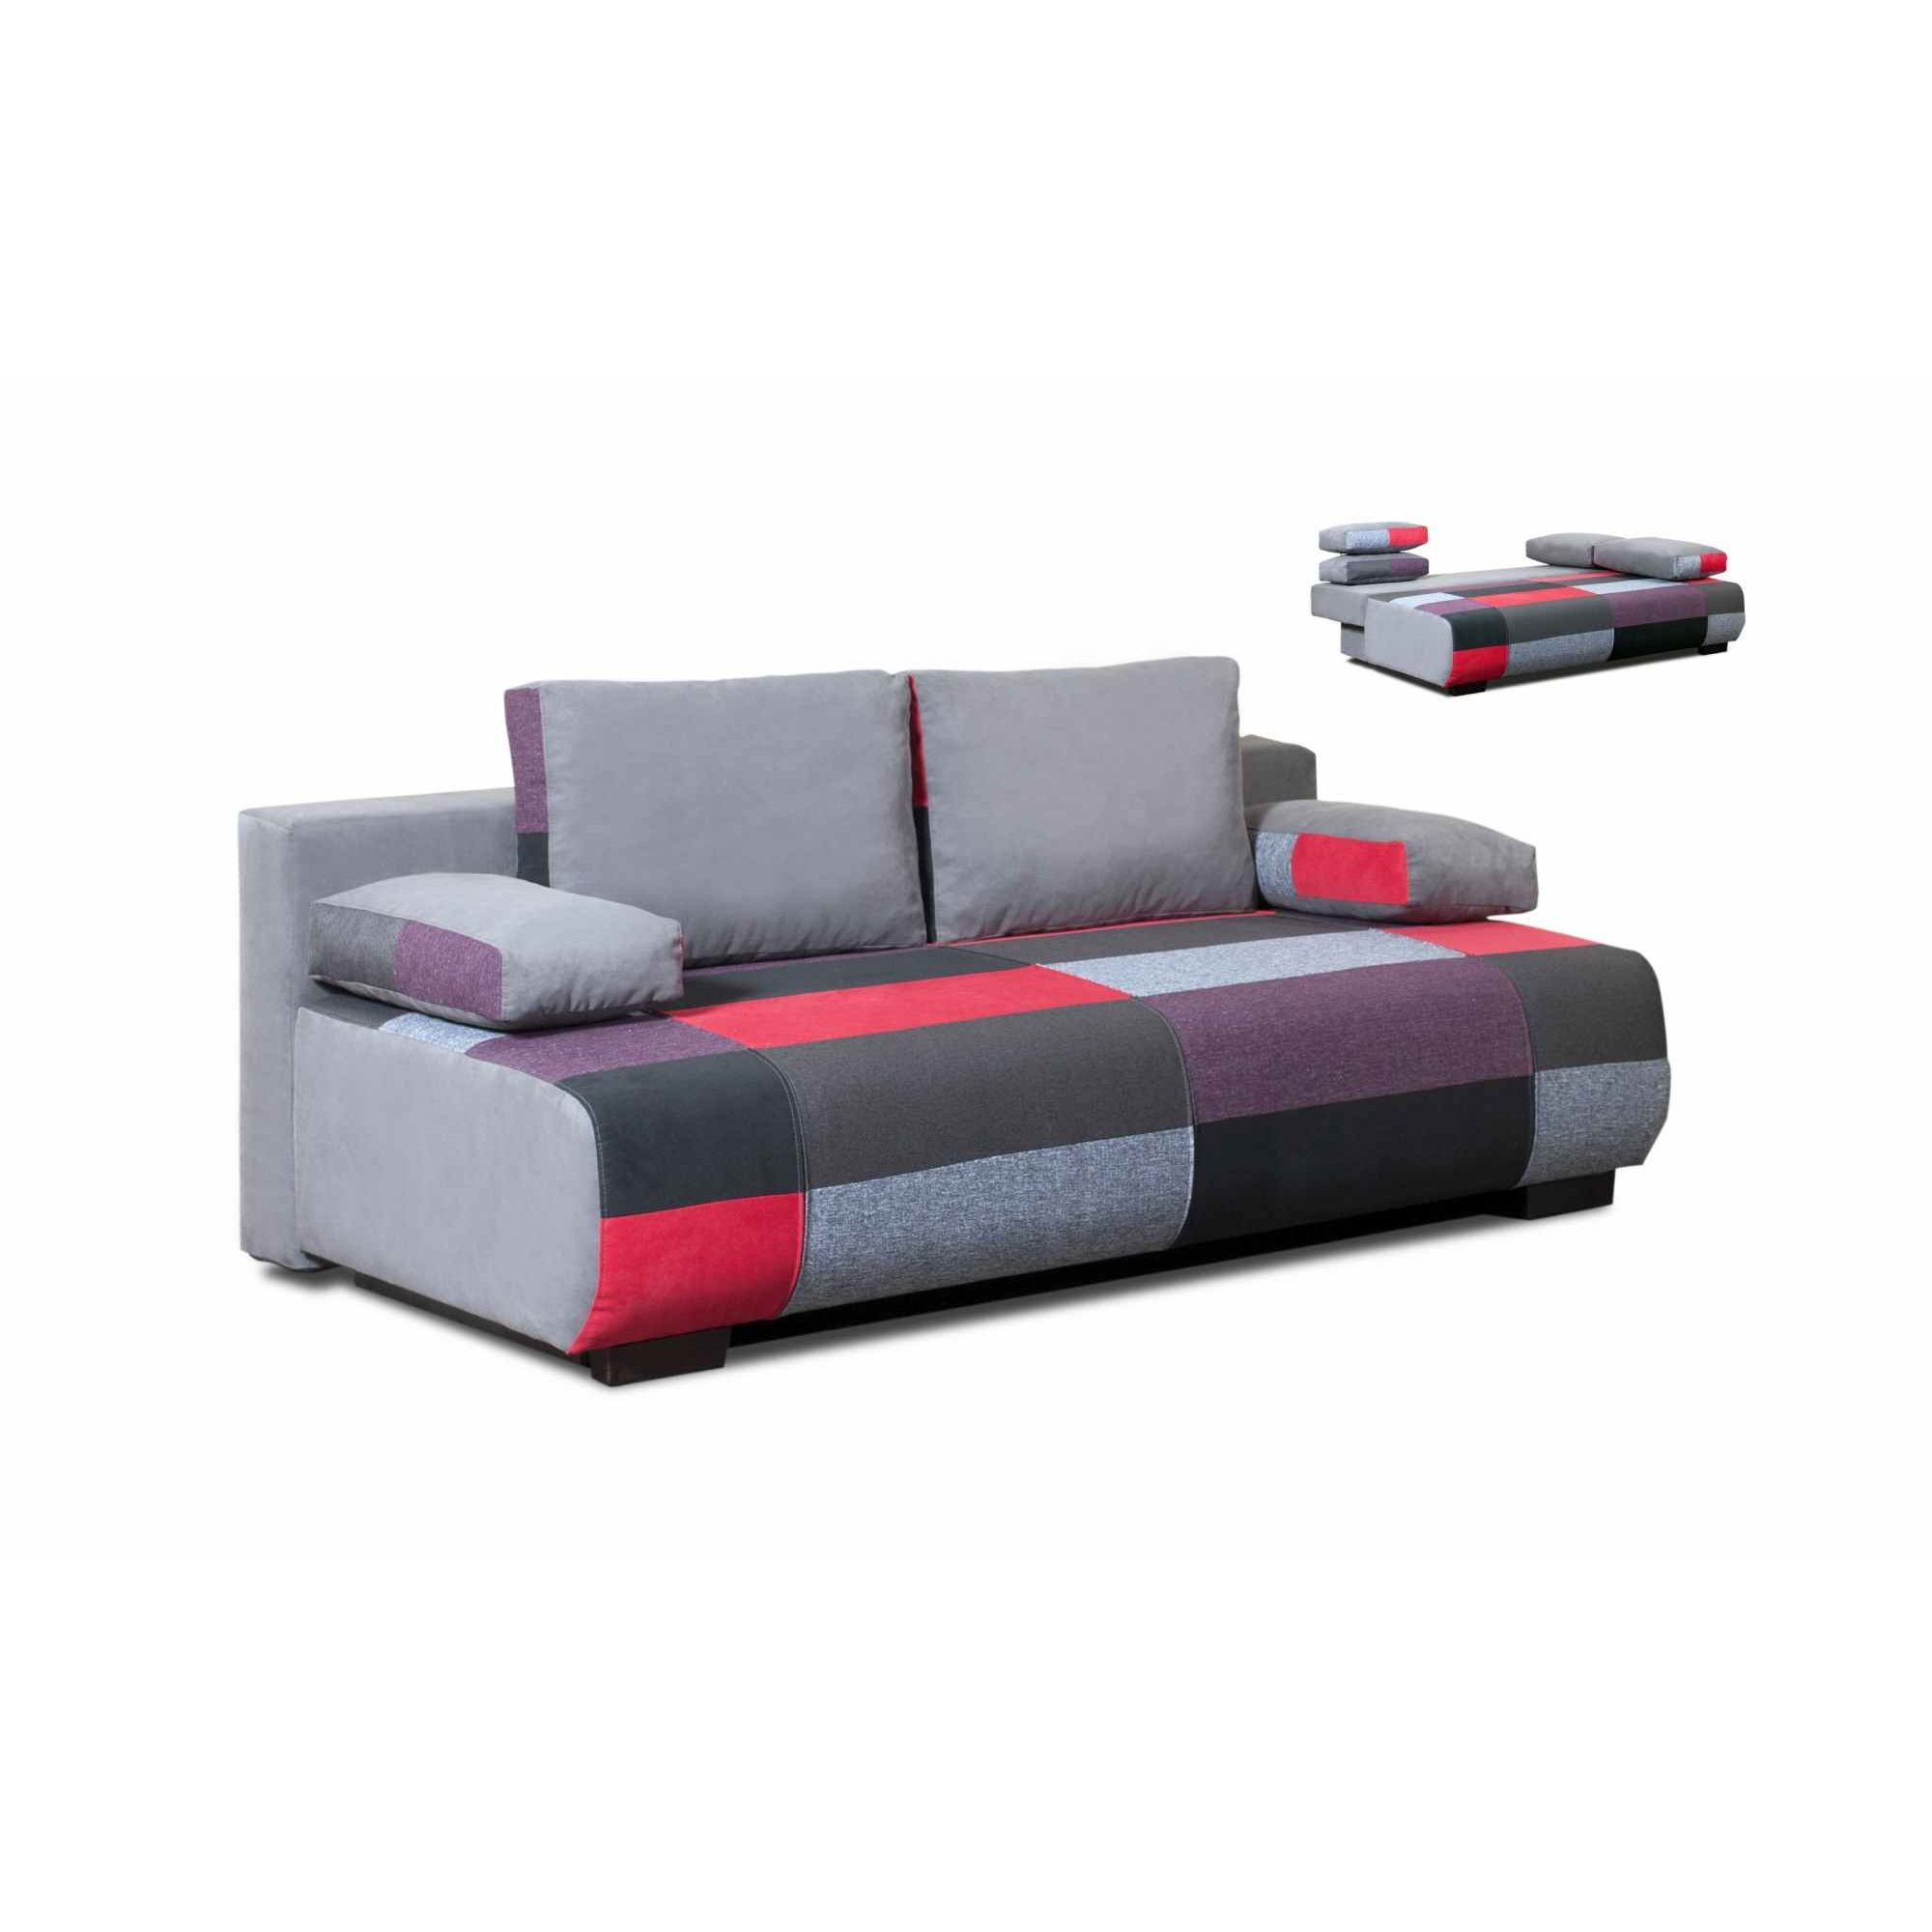 Deco in paris canape 3 places convertible en tissu rouge - Canape 3 places convertible ...